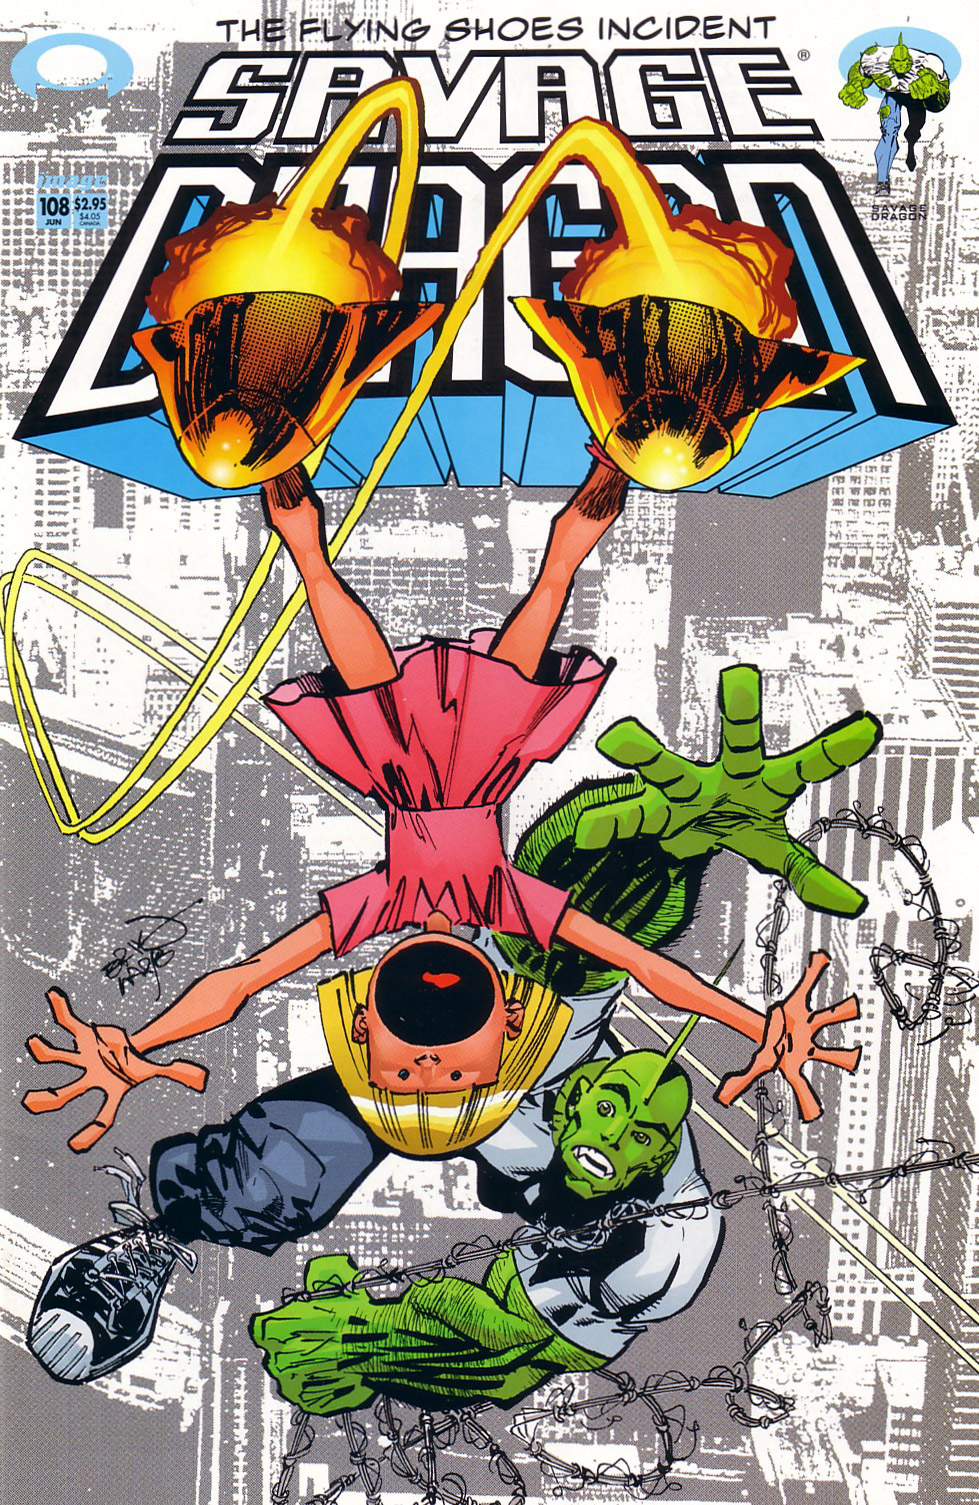 Cover Savage Dragon Vol.2 #108